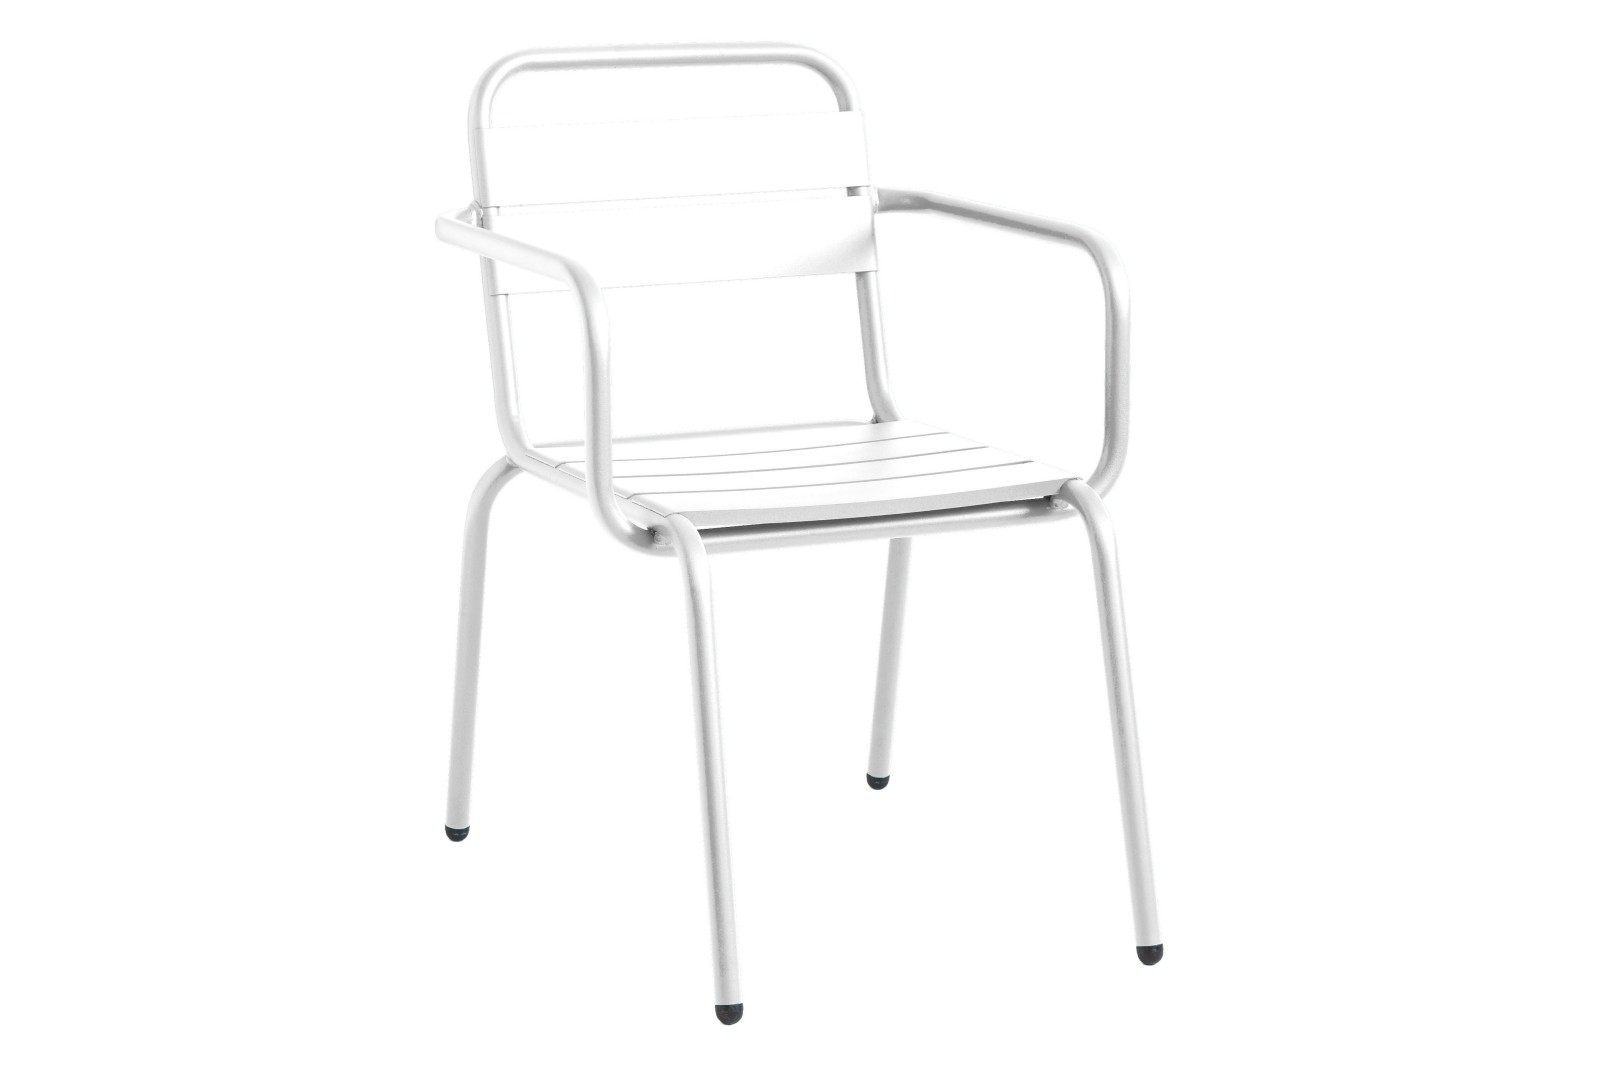 Barceloneta 4 Slats Dining Chair with Arms Set of 3 RAL 9016 Ibiza White